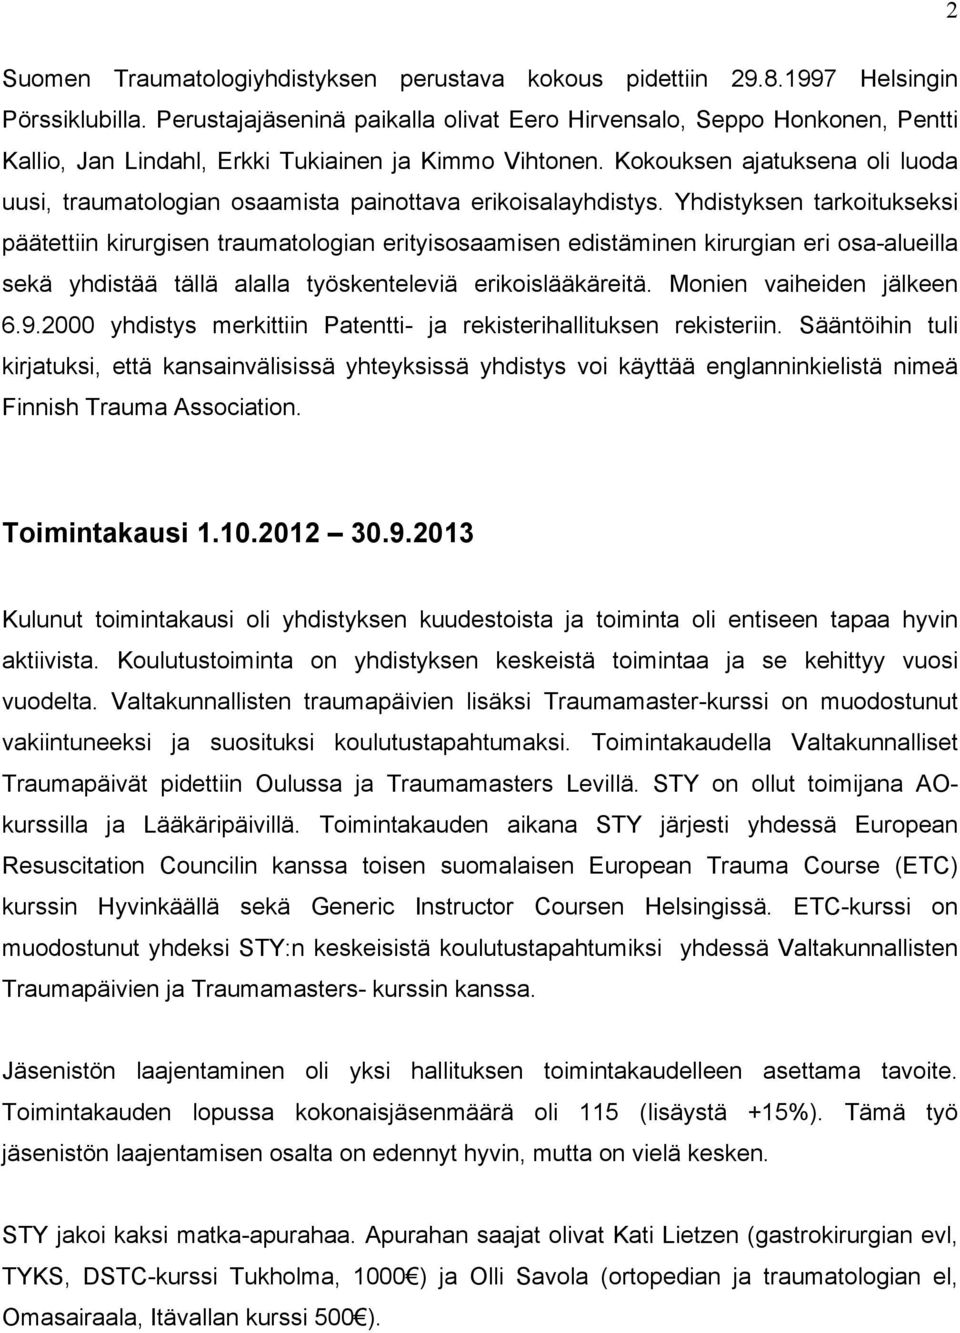 World History/suomen kalliopera term paper 7555